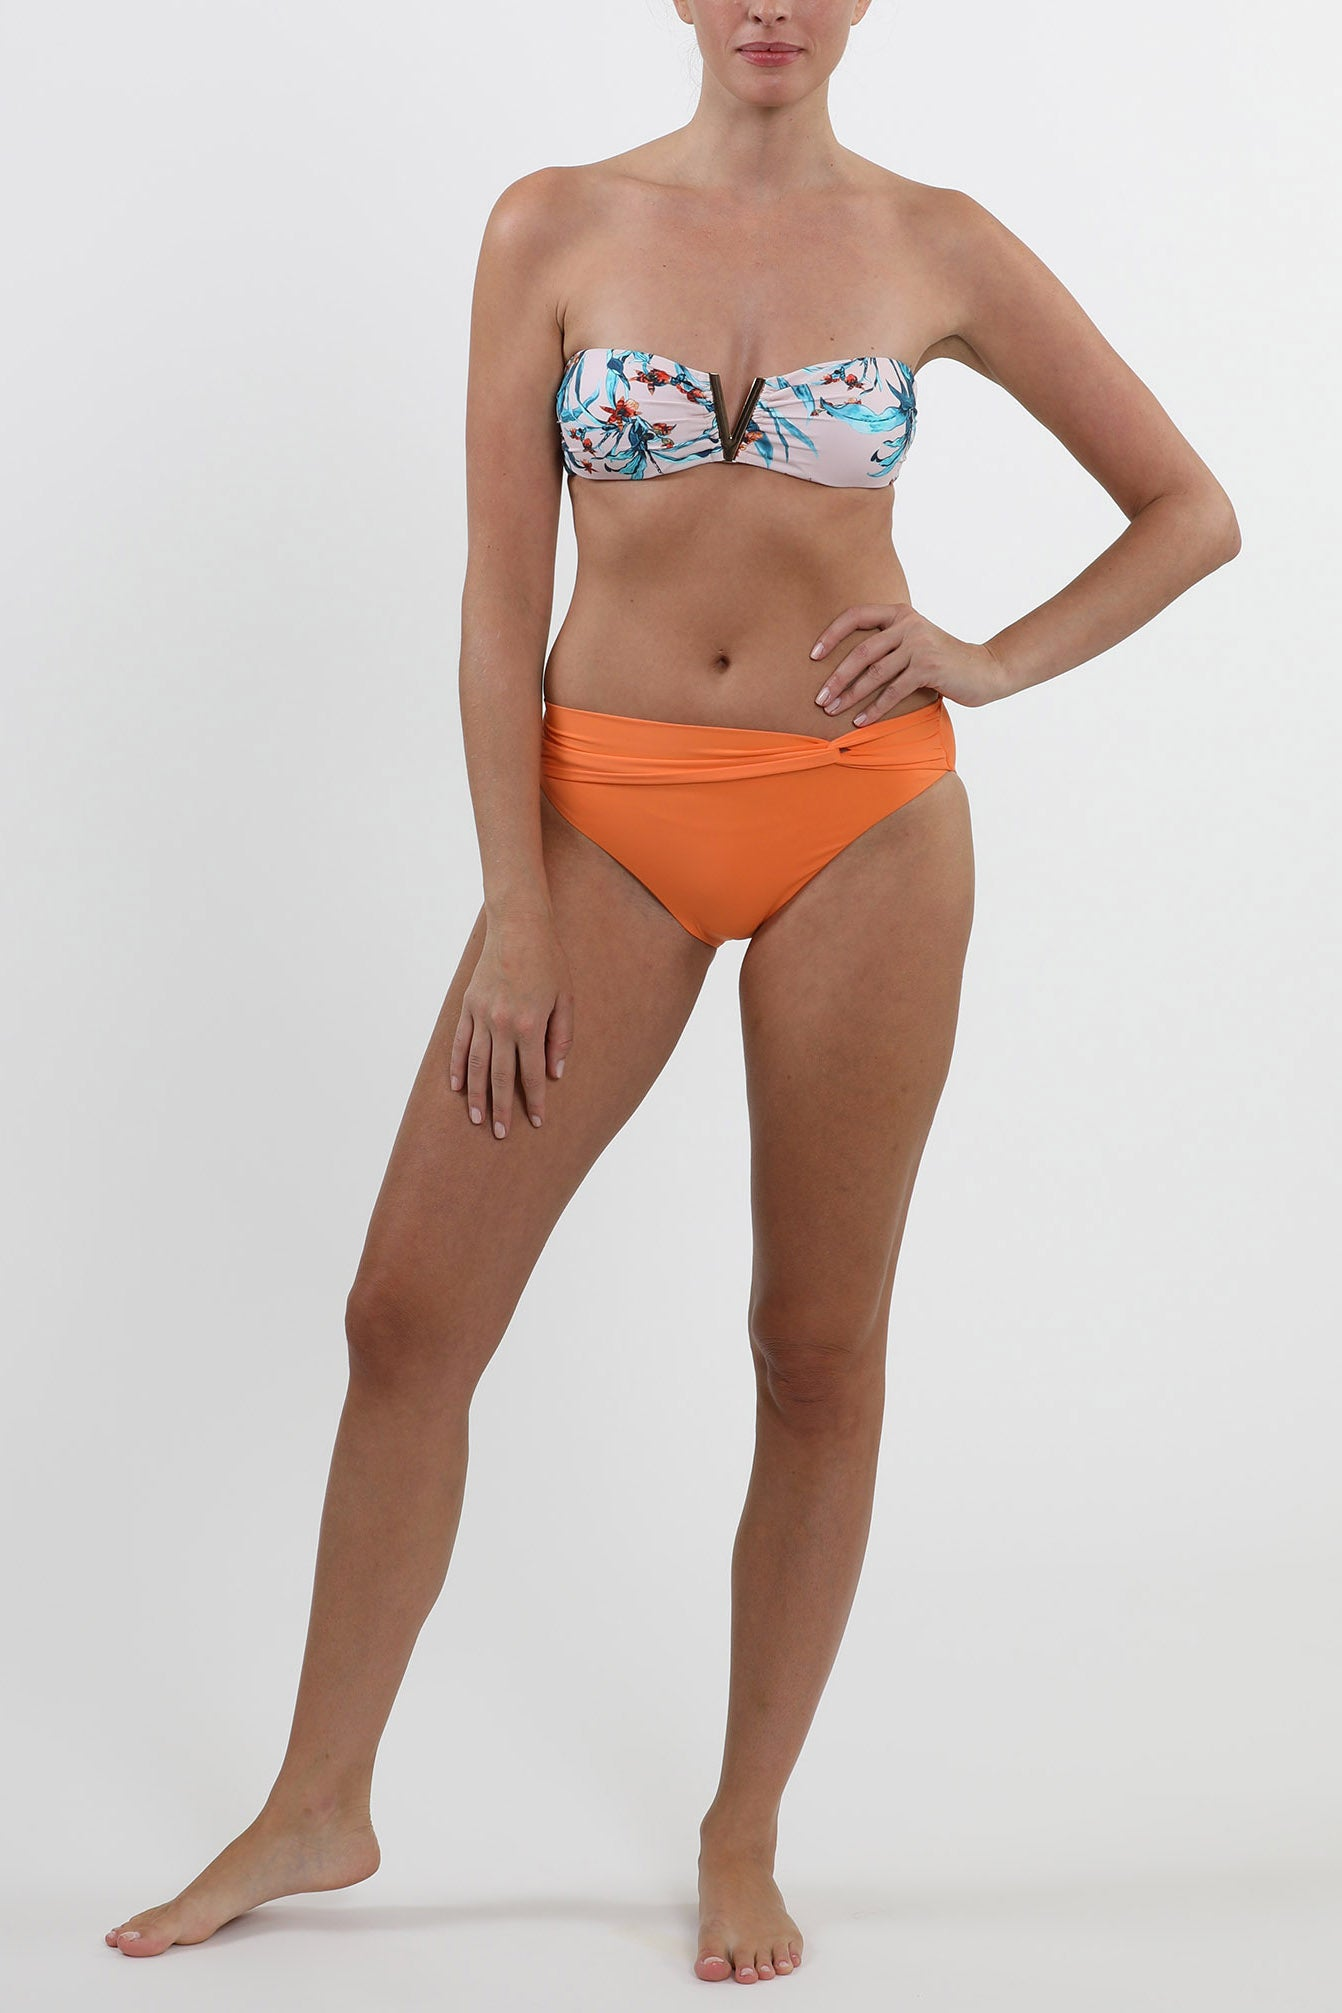 MALDIVES - Twist front detail swimwear bikini bottom - Tangerine Orange